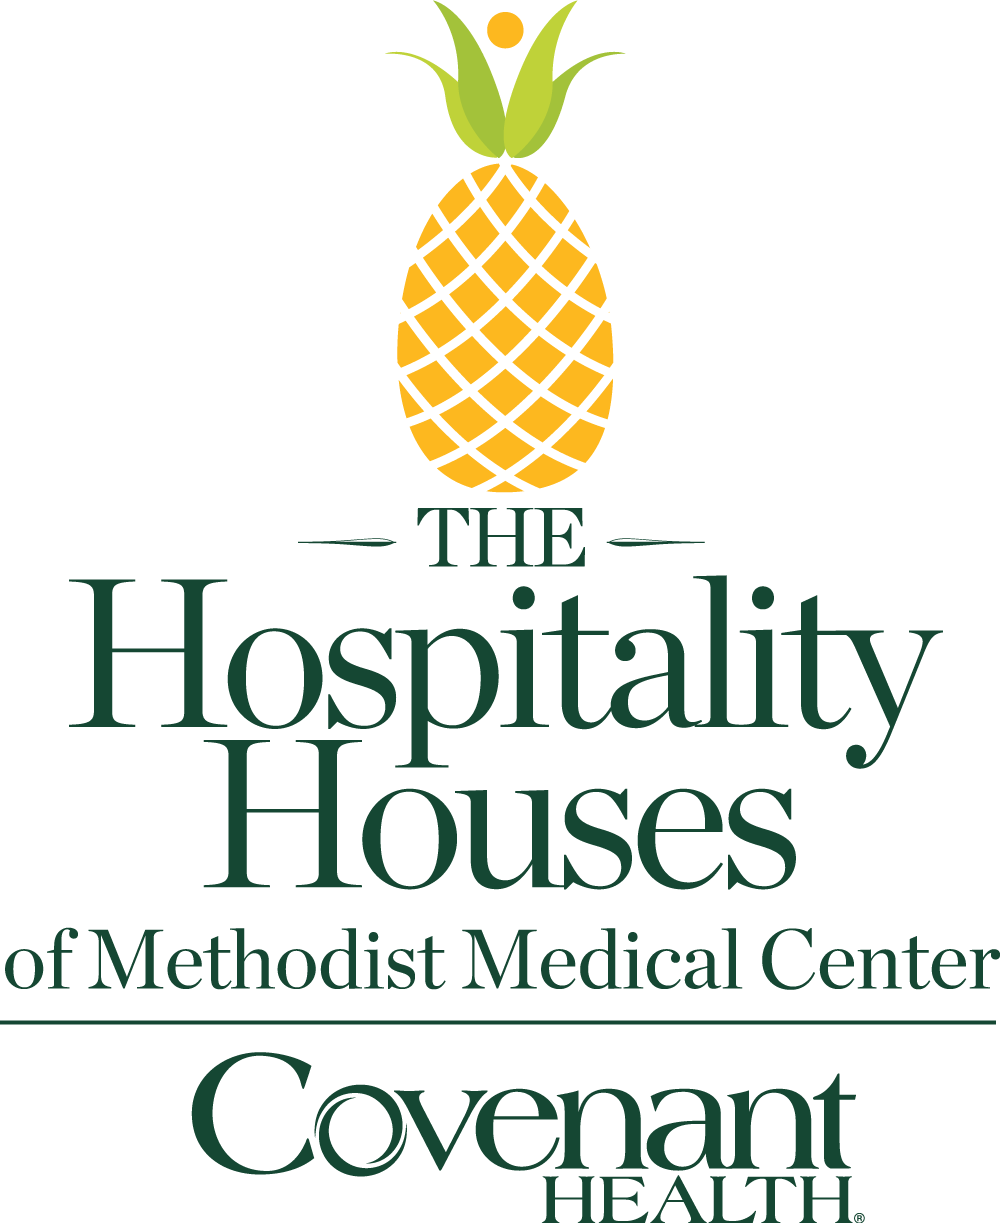 The Hospitality Houses of Methodist Medical Center